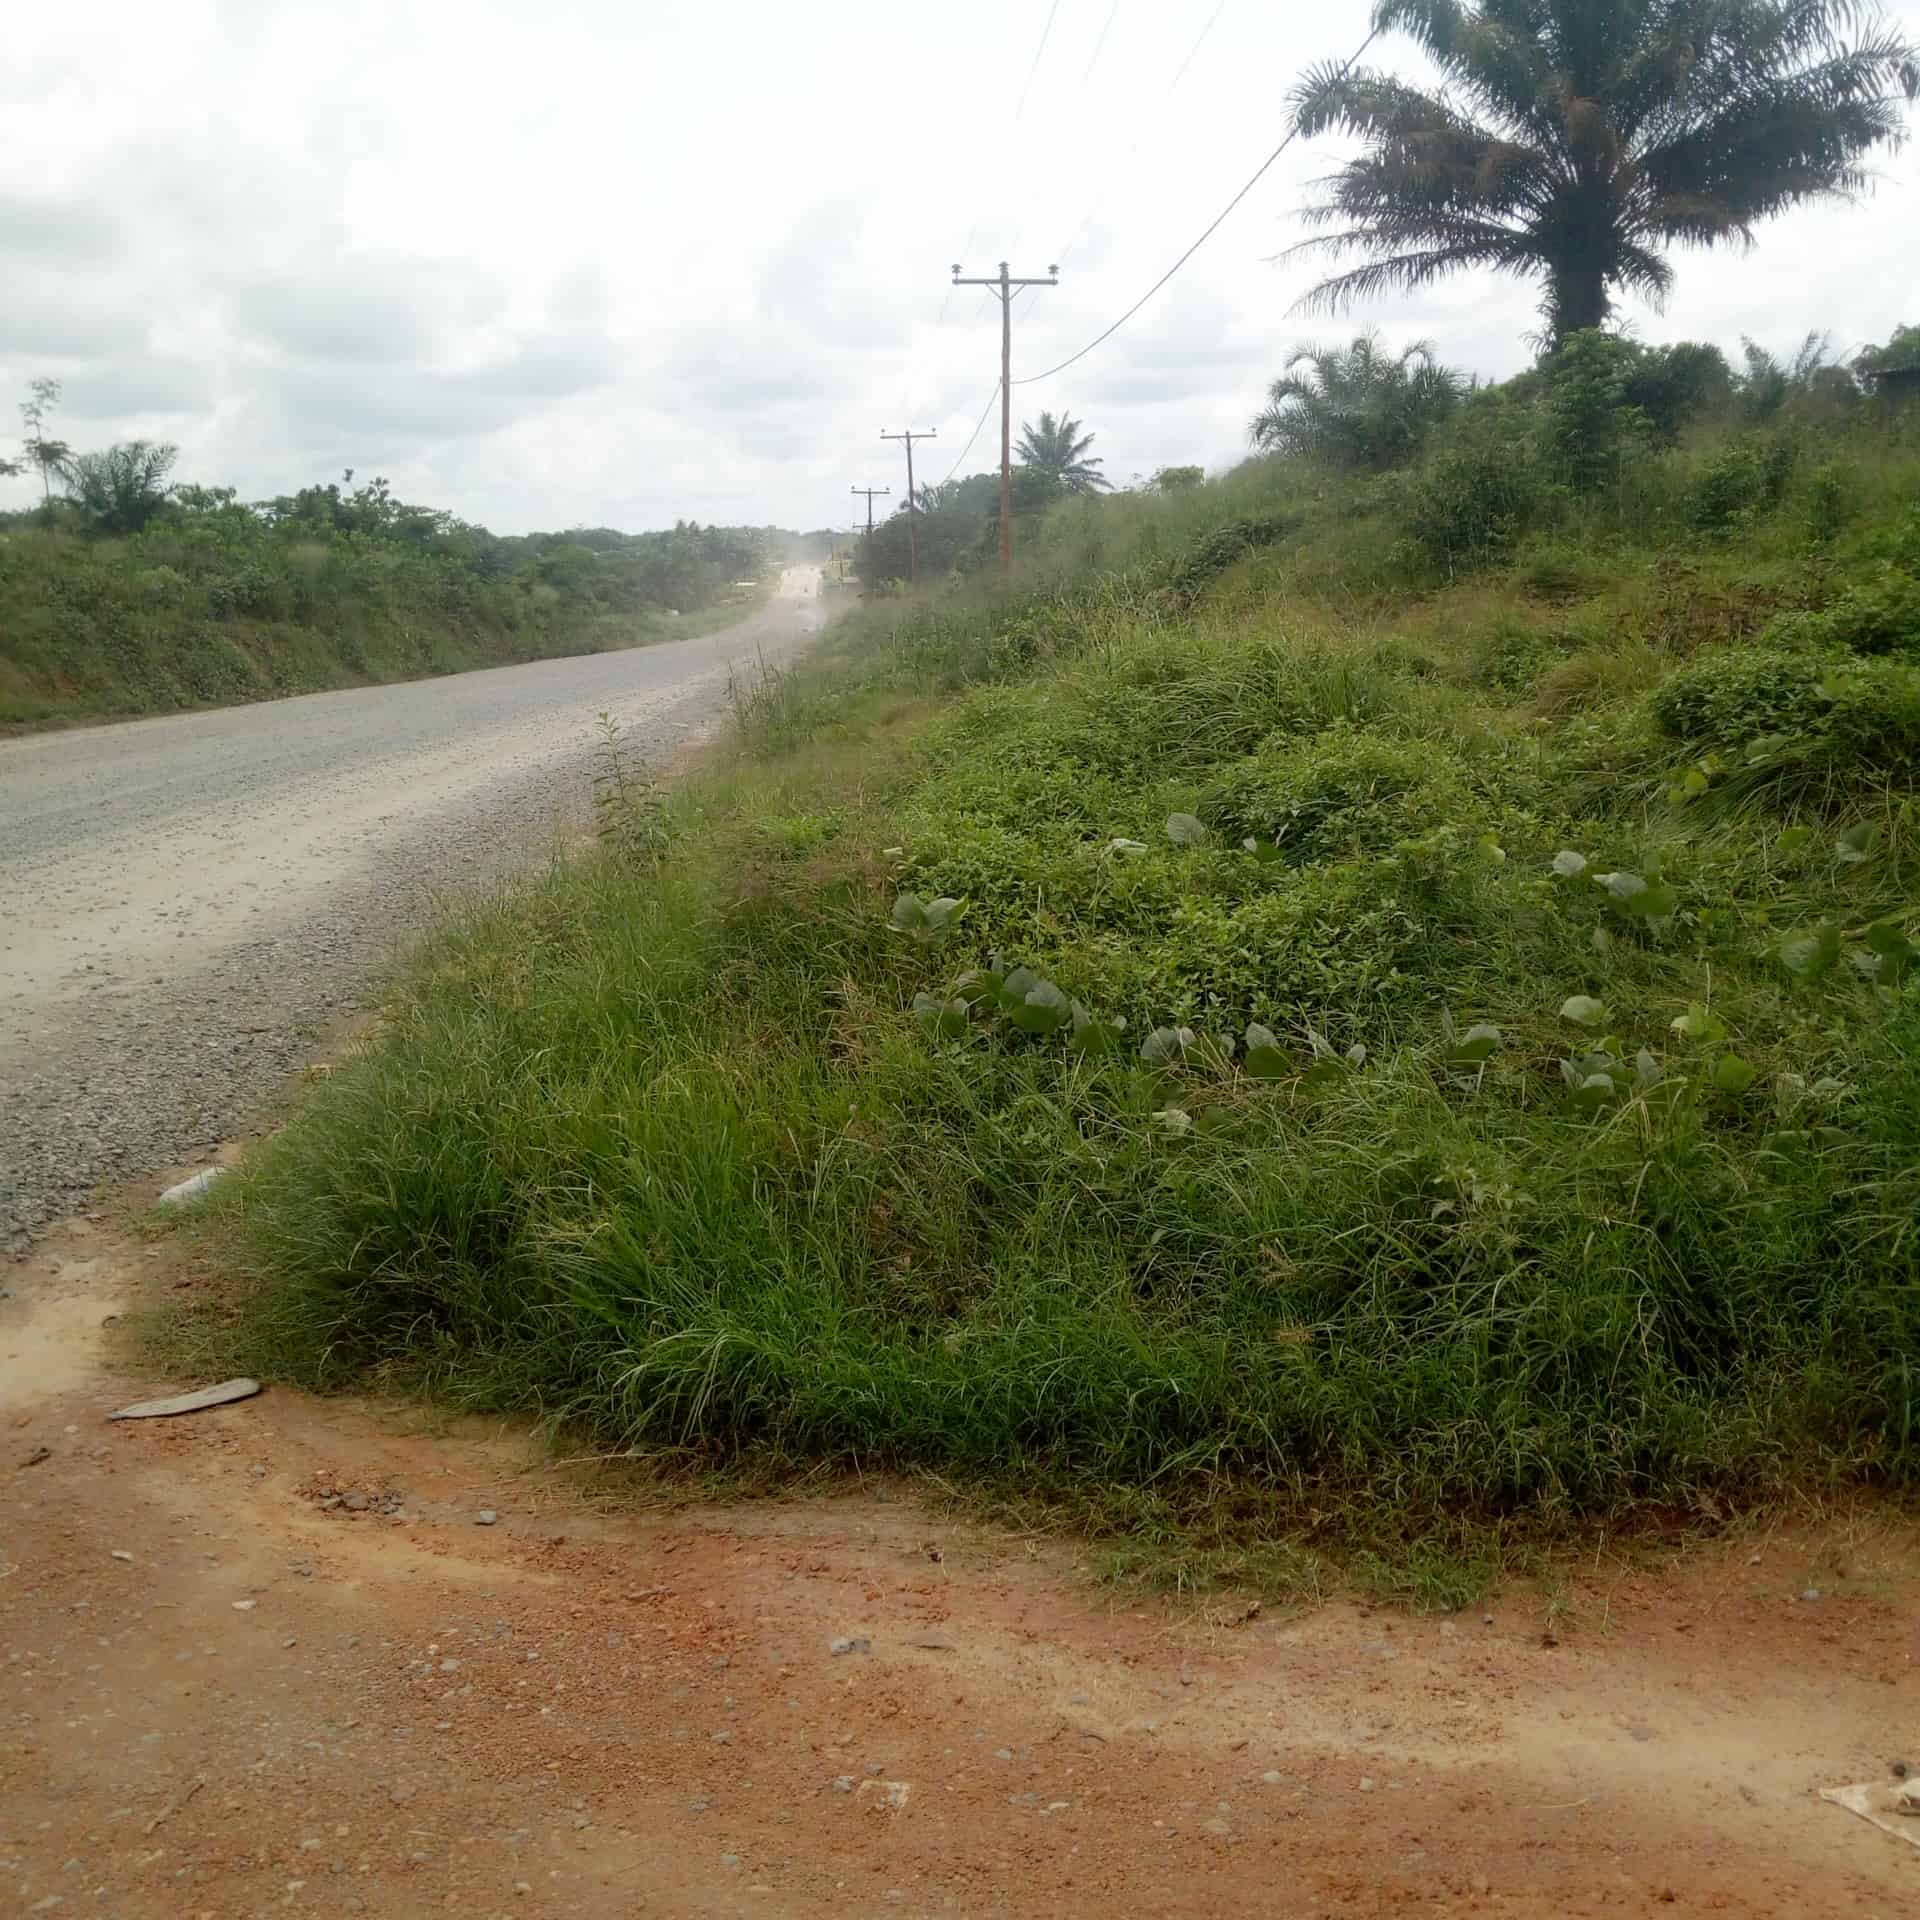 Land for sale at Douala, PK 26, Pk26 - 1000 m2 - 8 000 000 FCFA